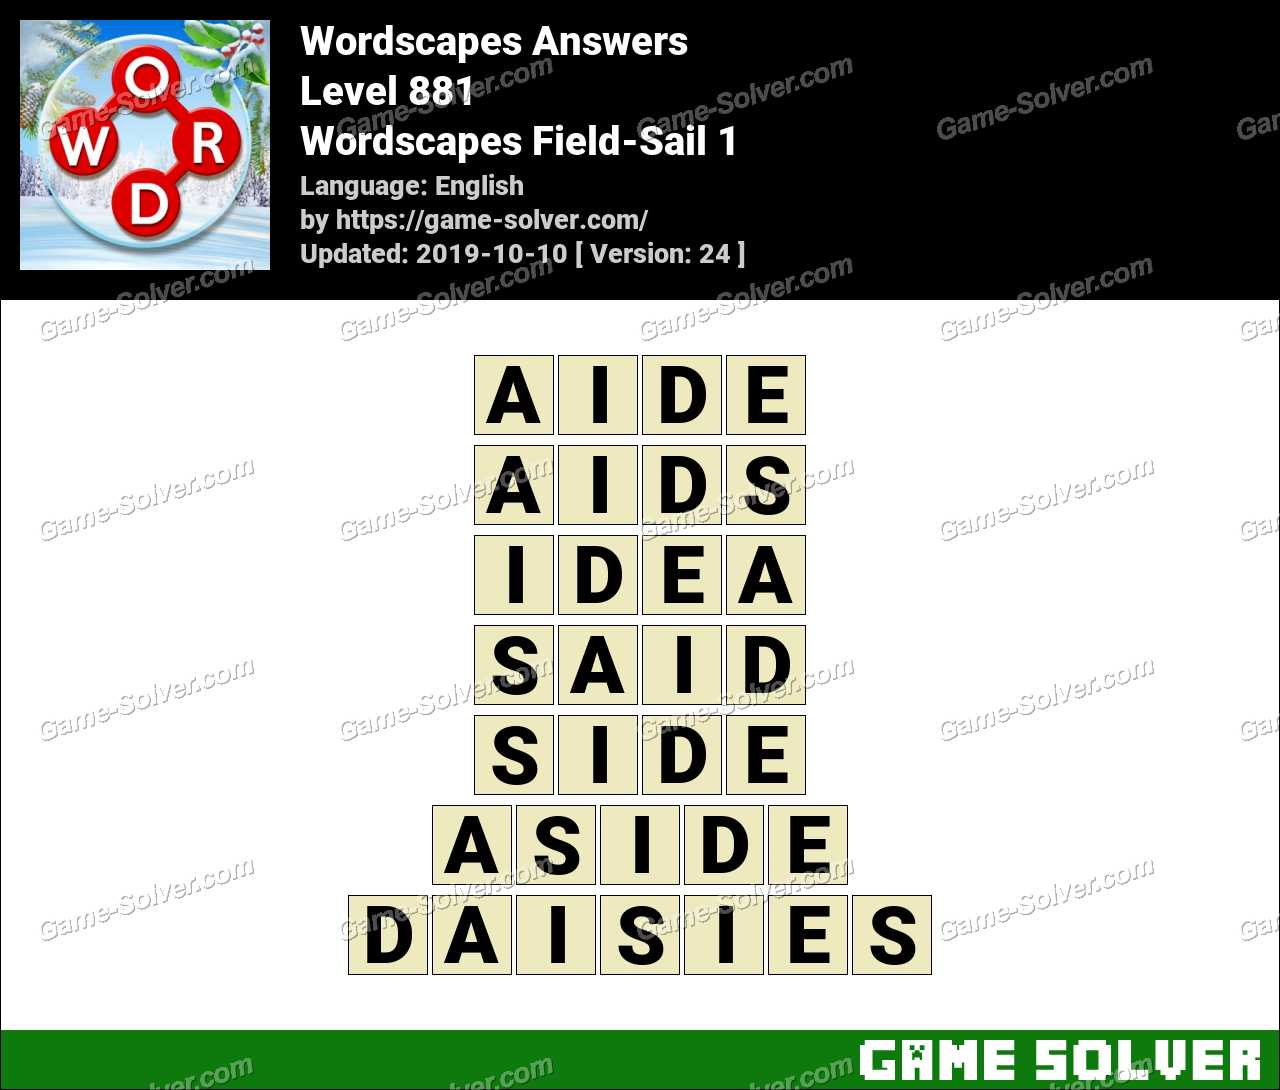 Wordscapes Field-Sail 1 Answers